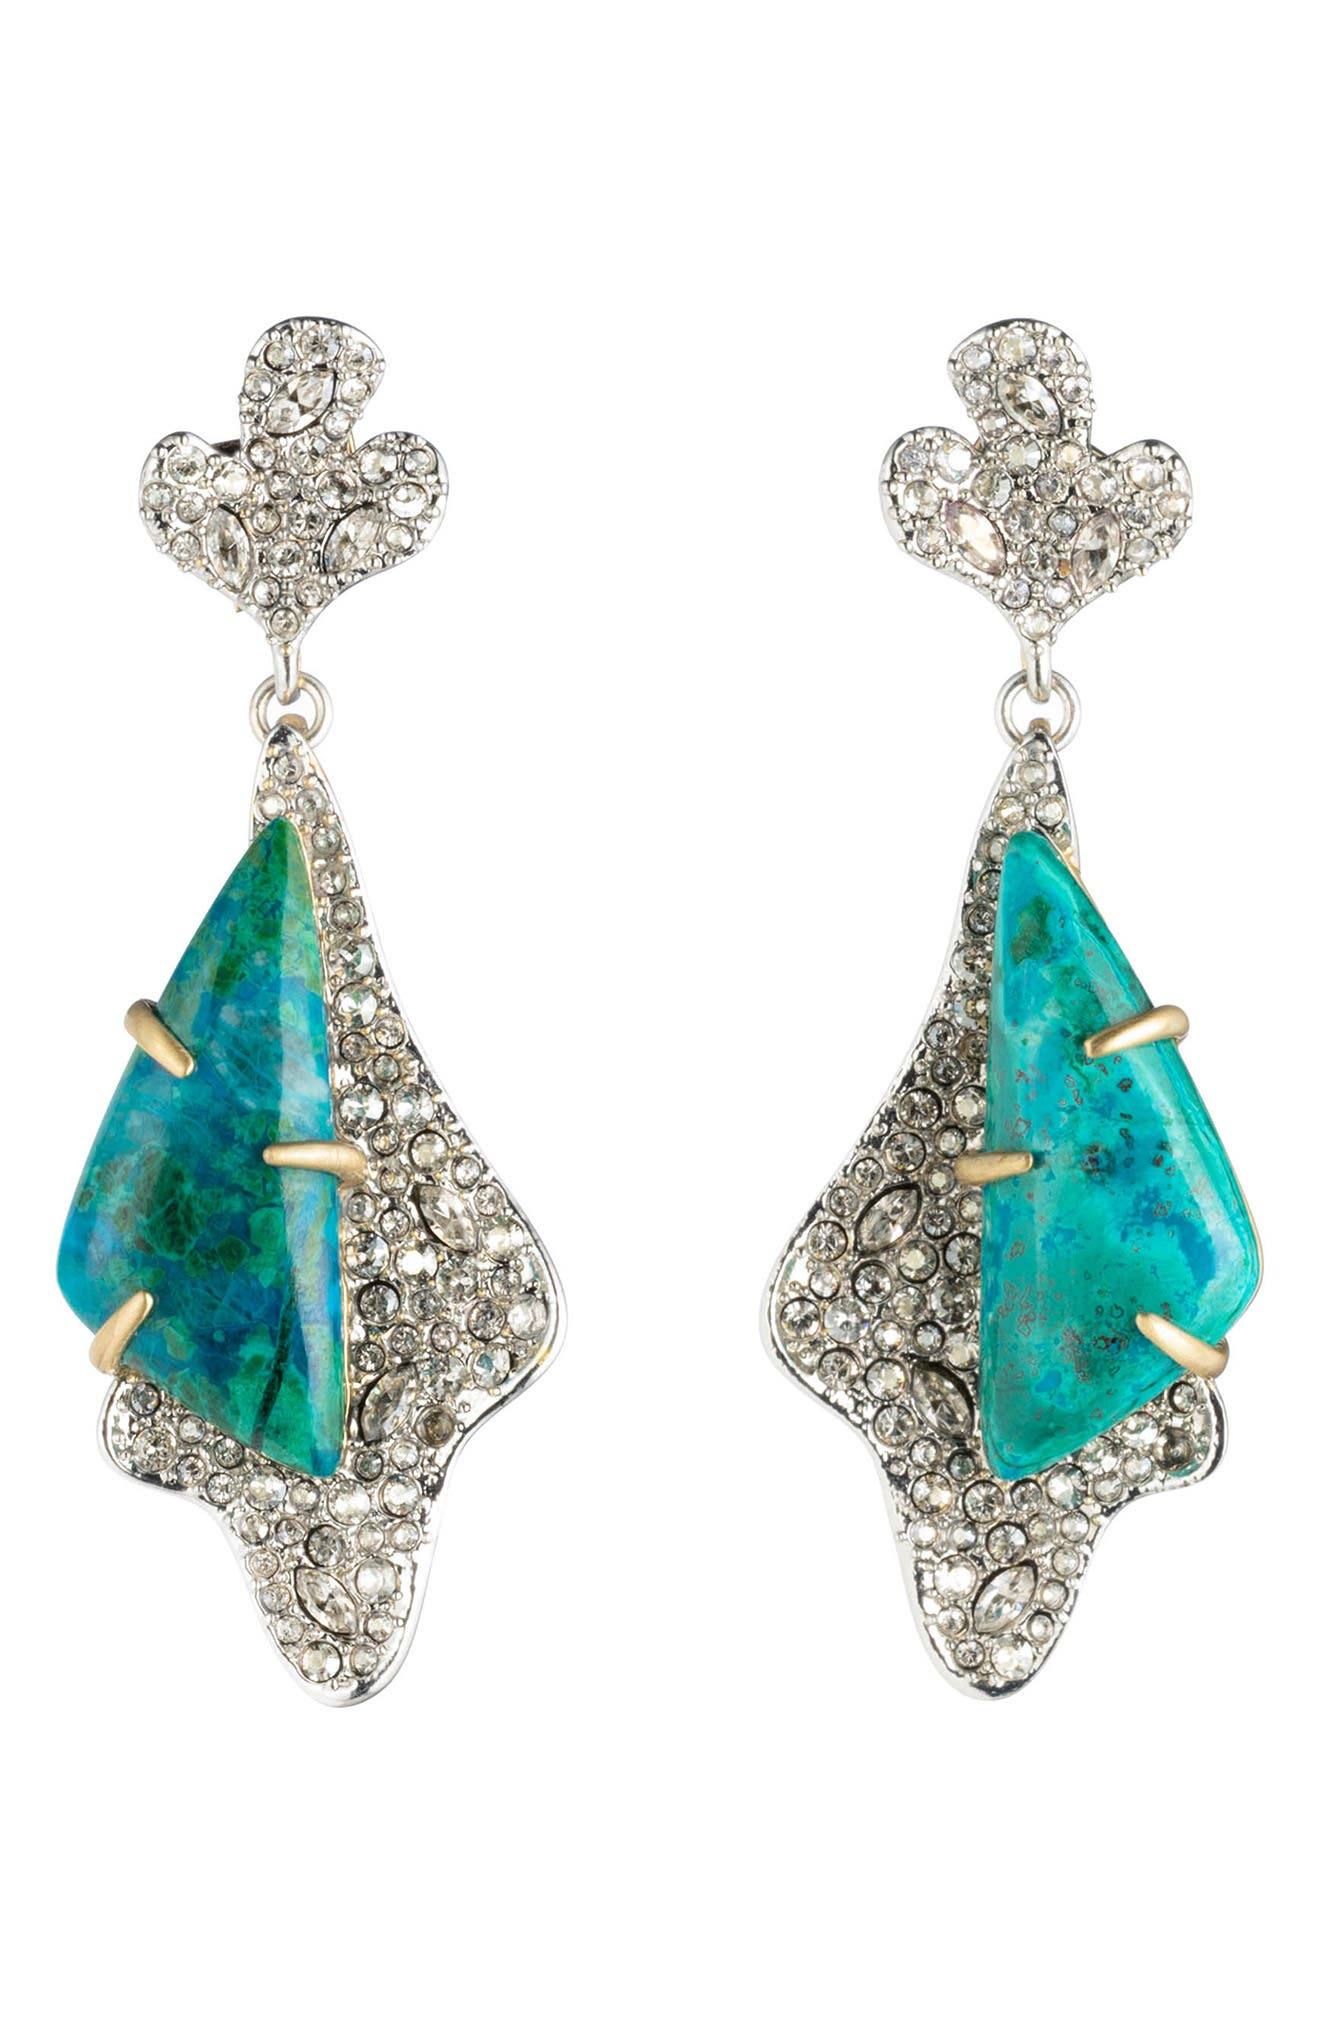 Alexis Bittar Roxbury Crystal Encrusted Post Earrings